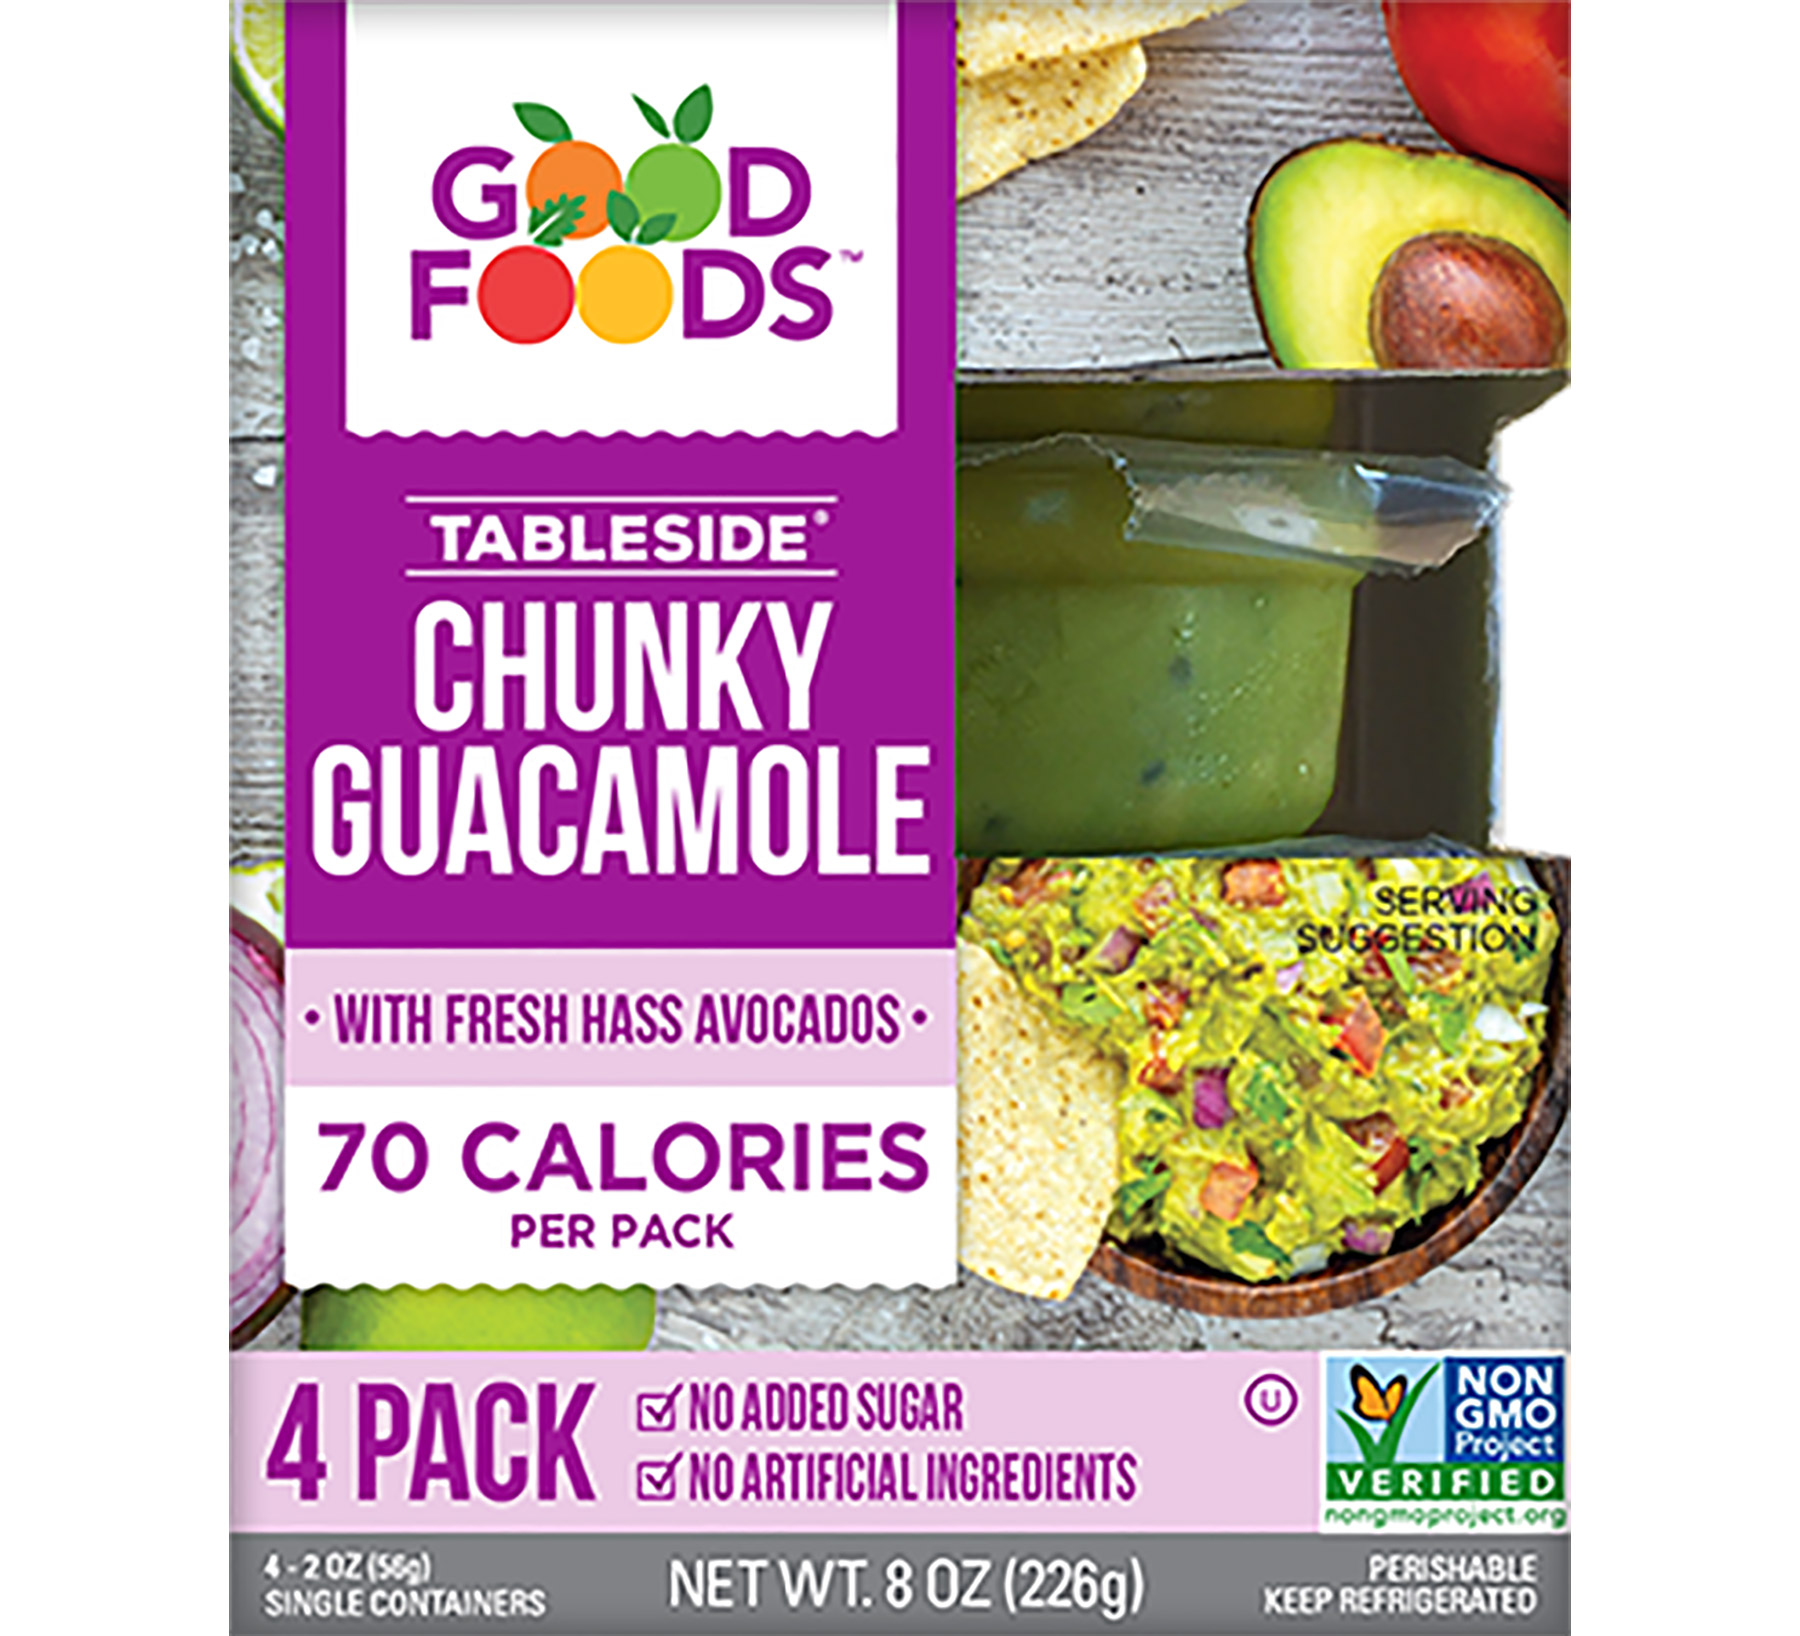 Good Foods Tableside Chunky Guacamole